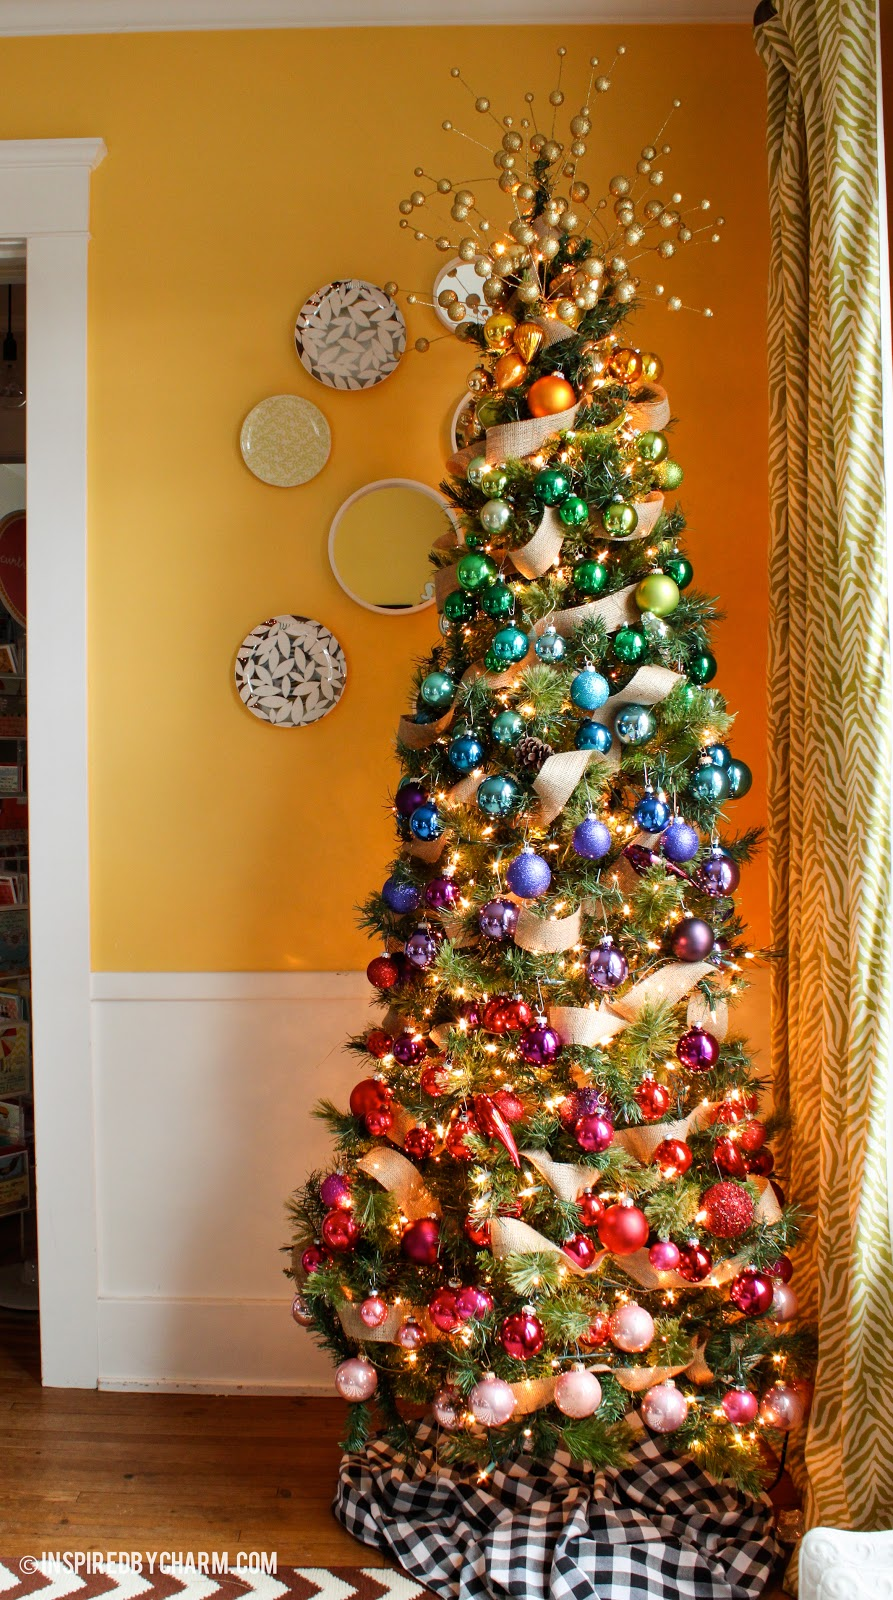 Colorful Christmas Tree Decorations.30 Christmas Tree Ideas For An Unforgettable Holiday